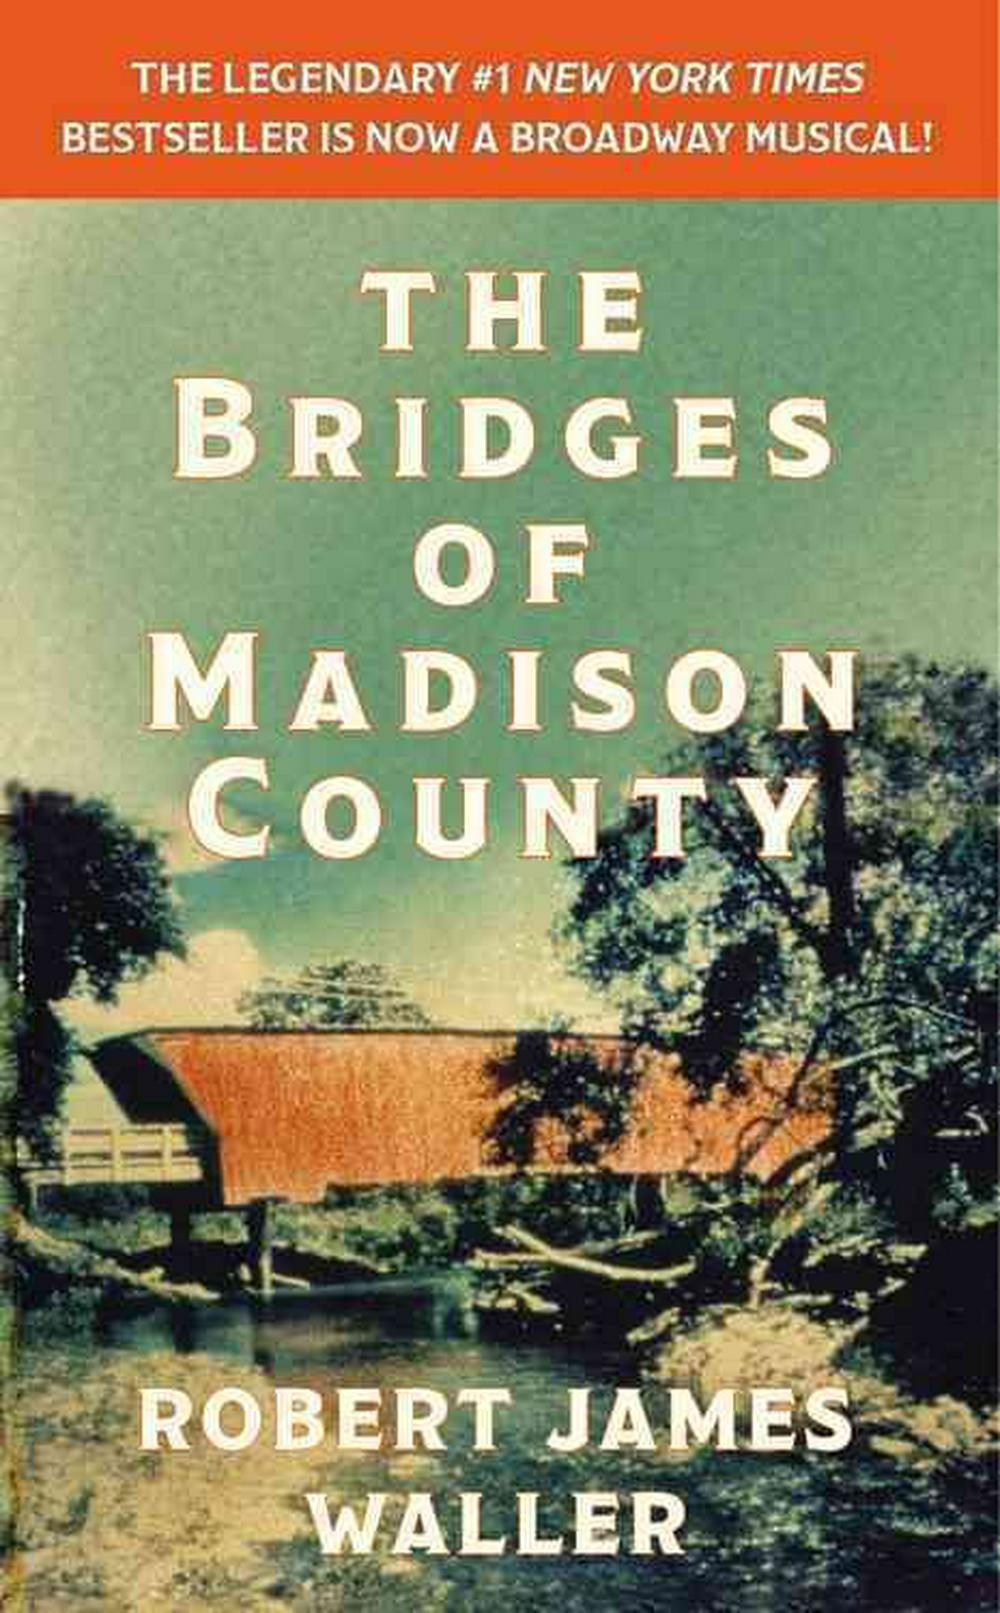 The Bridges of Madison County by Robert James Waller, ISBN: 9781455554287